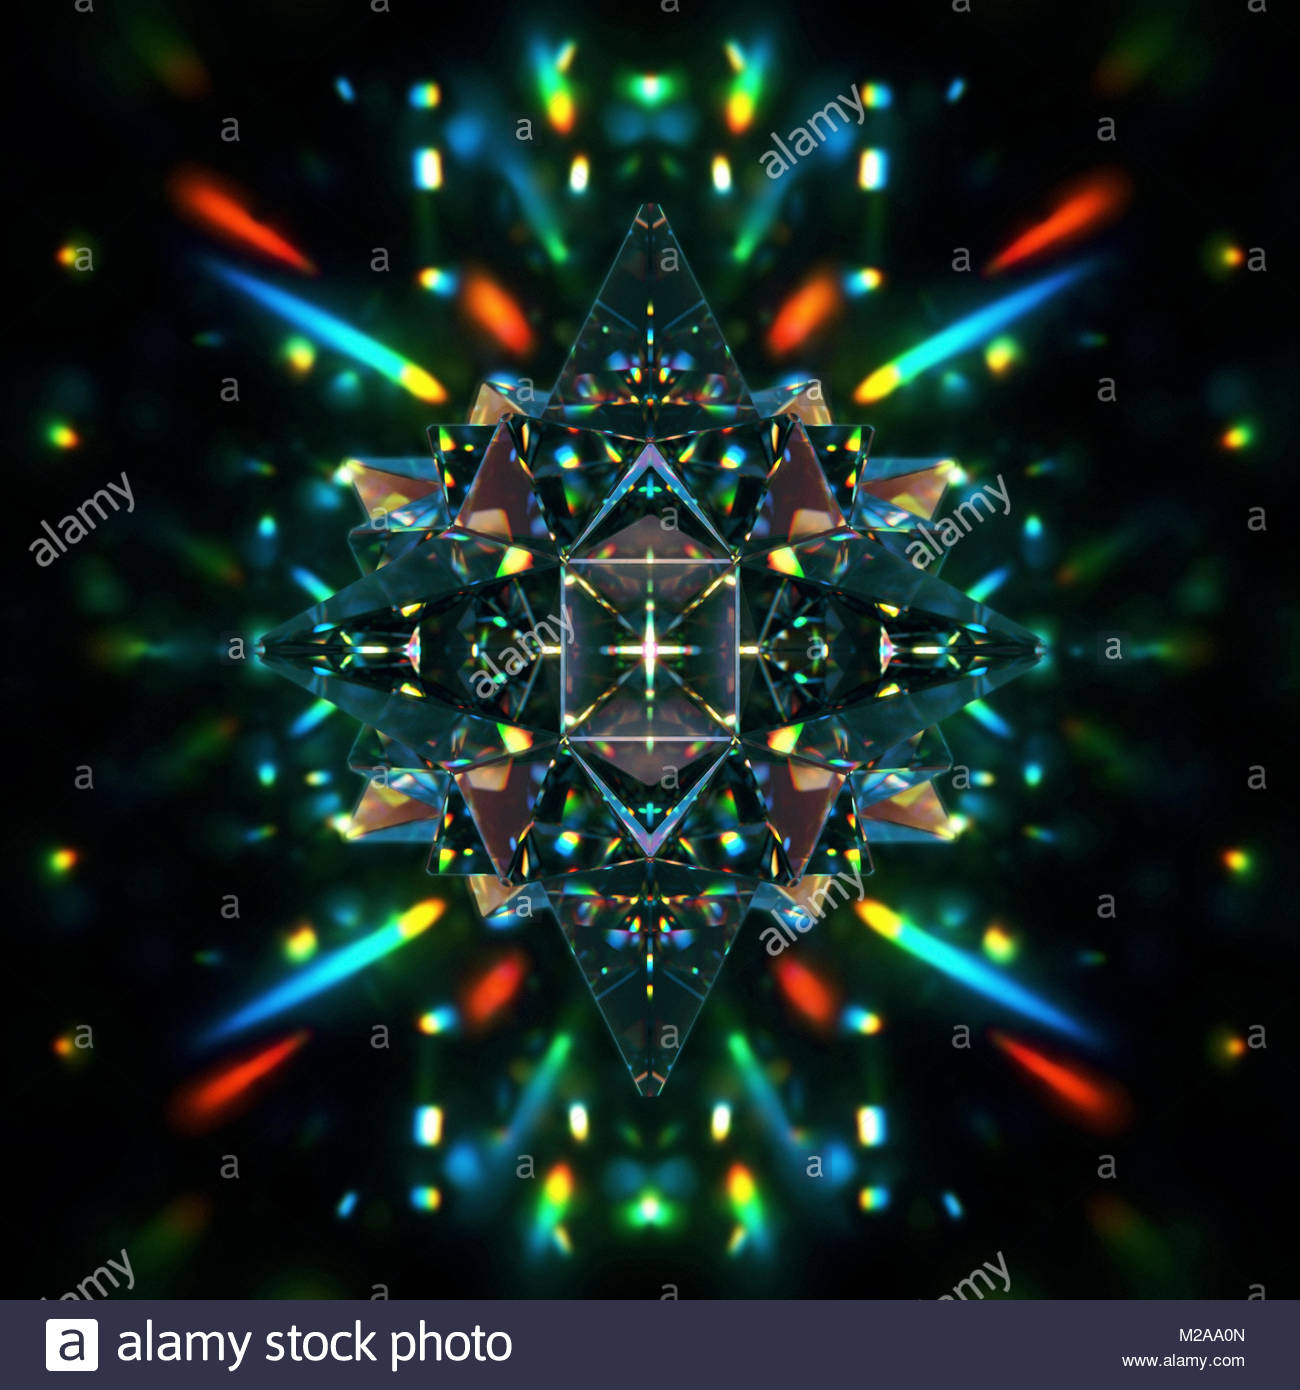 Abstract symmetrical pattern of multicolored light trails and crystal pyramid shapes - Stock Image